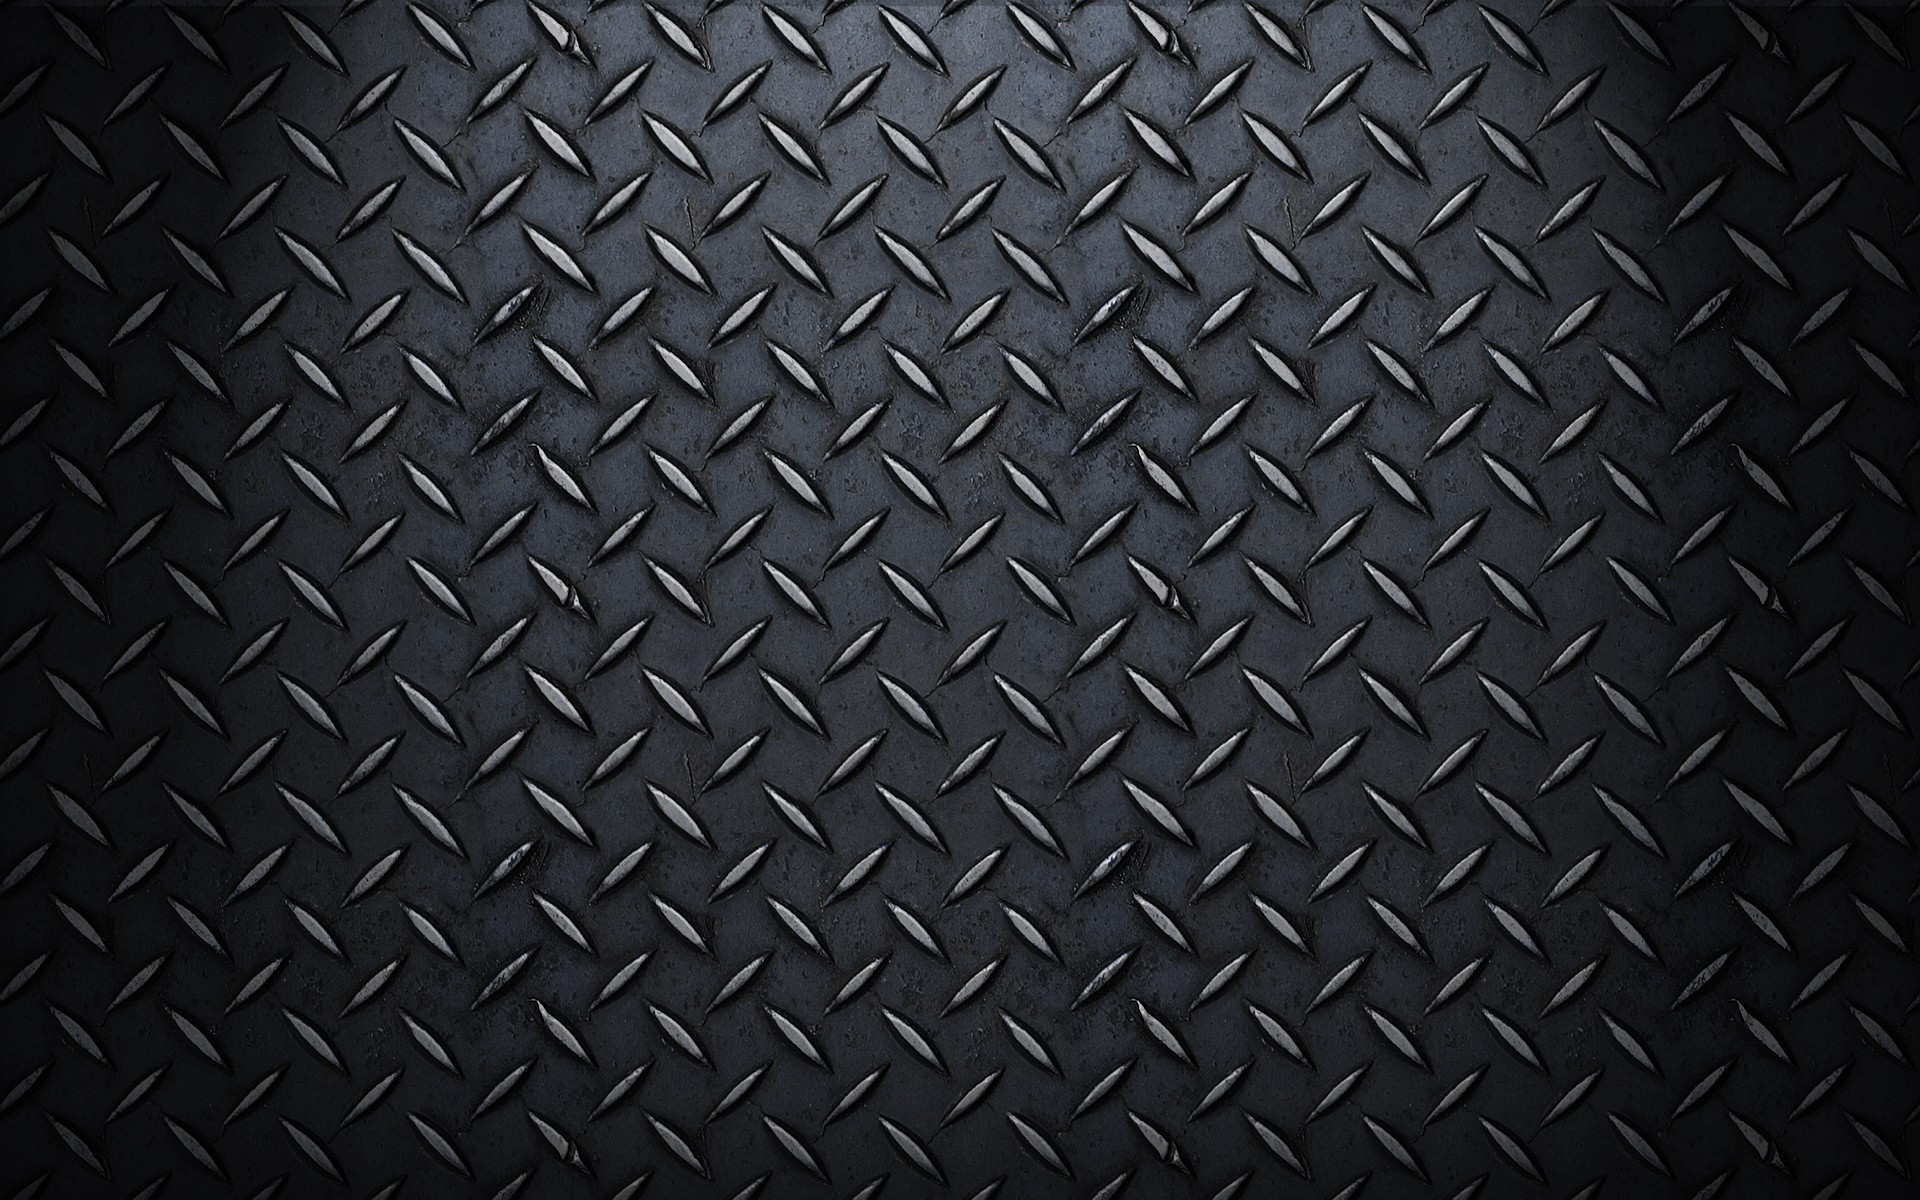 Sheet metal wallpaper 45 images - Real carbon fiber wallpaper ...